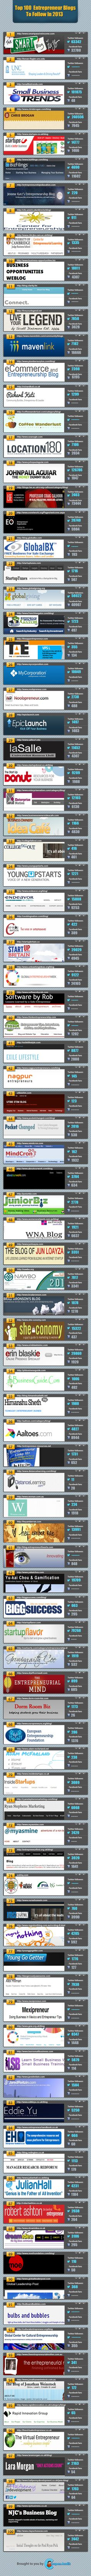 CEO Blog Nation Included in the Infographic Top 100 Entrepreneur Blogs to Follow in 2013 [INFOGRAPHIC] | CEO Blog Nation Beta